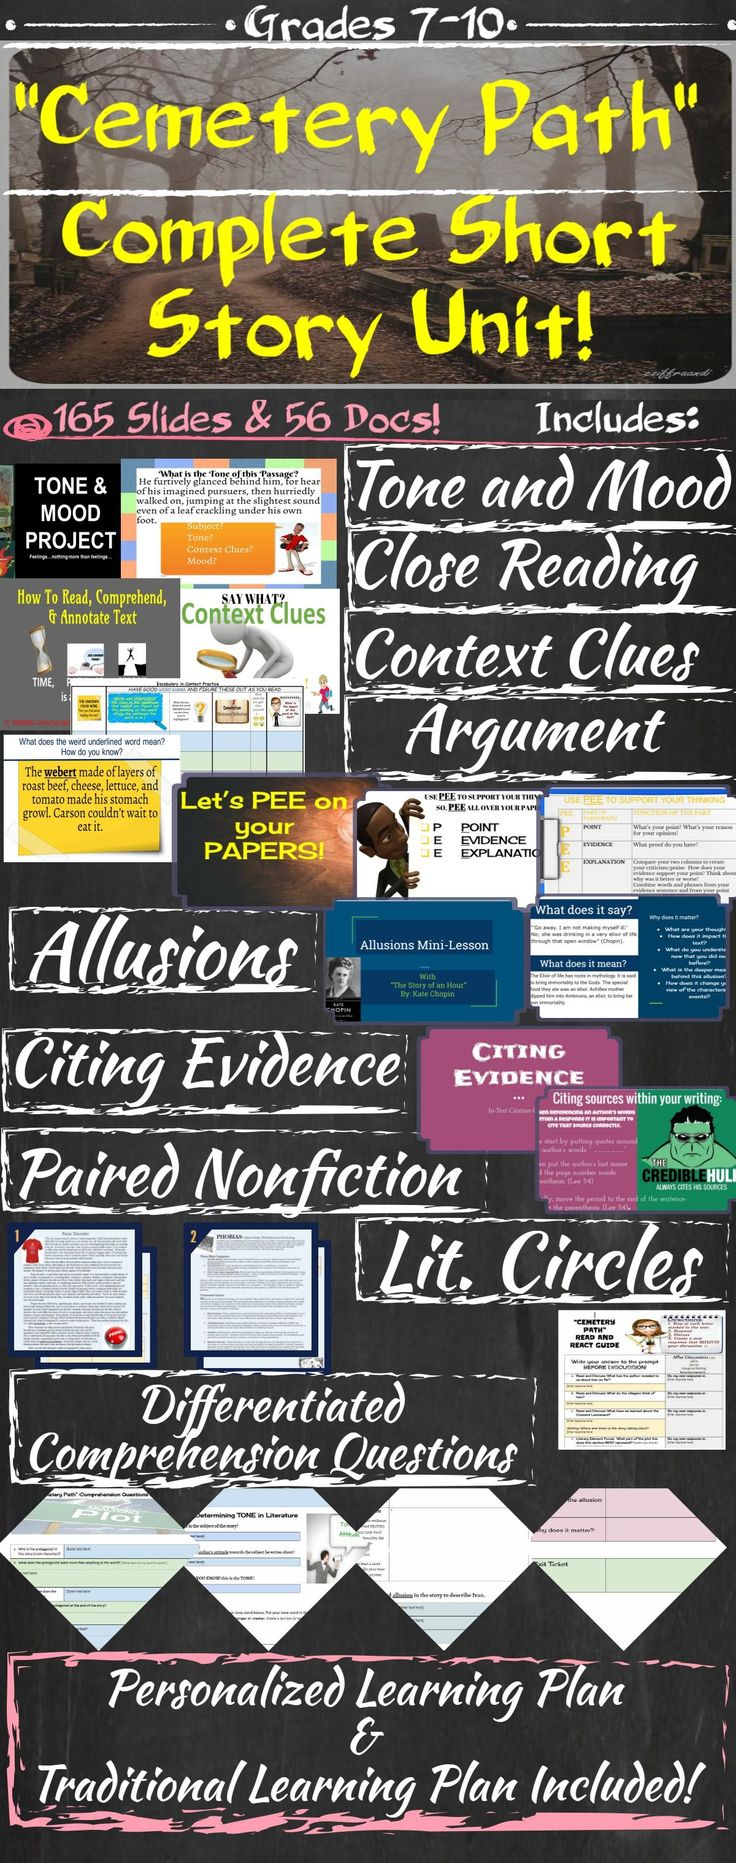 Best 25+ What is close reading ideas on Pinterest | Language arts posters,  Teaching paragraphs and Back to school writing ideas